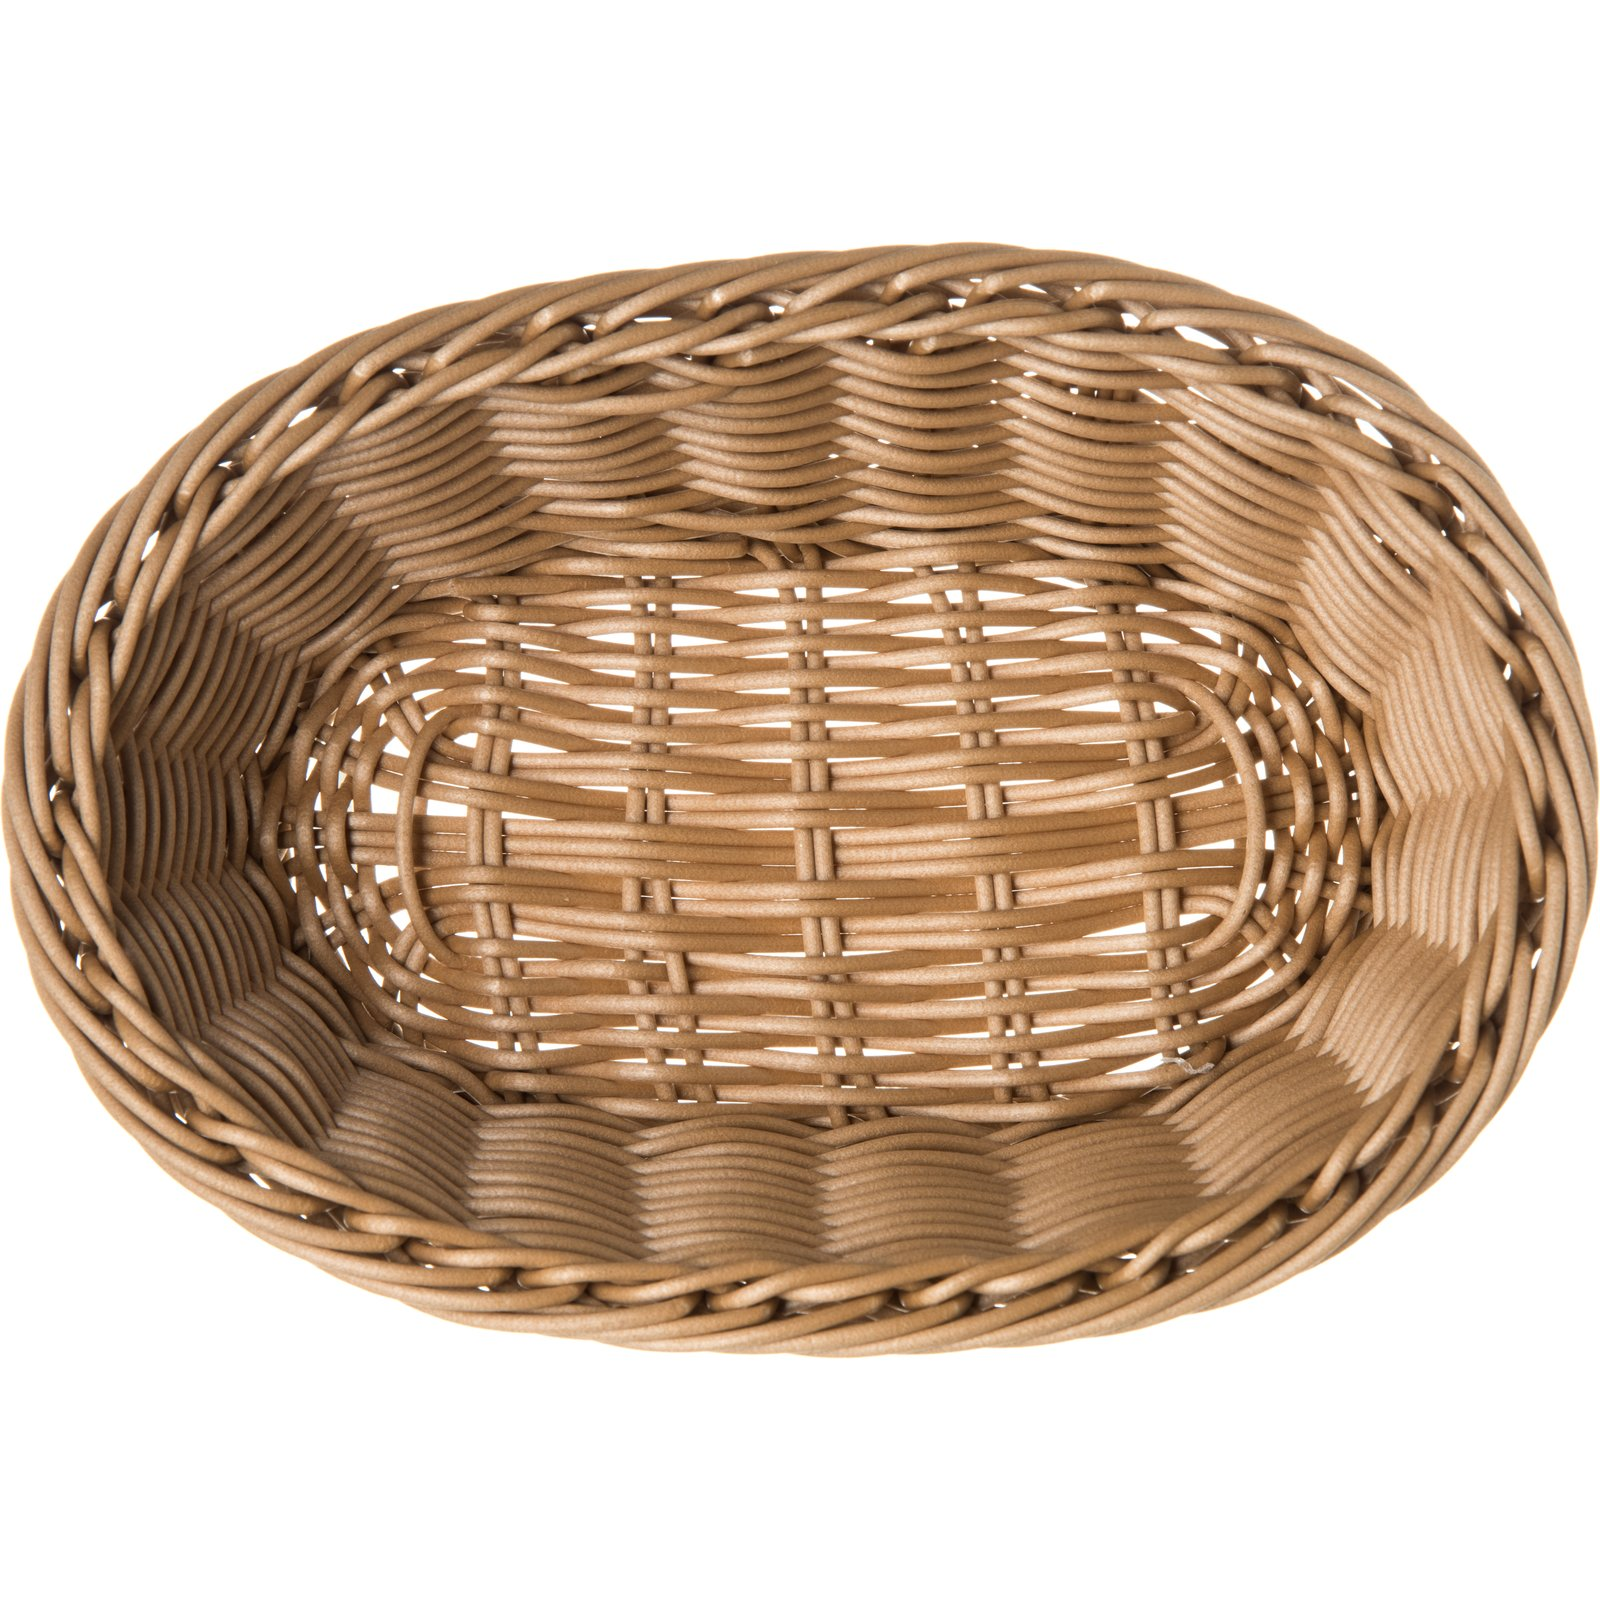 655025 Woven Baskets Oval Basket Small 9 Caramel Carlisle Foodservice Products